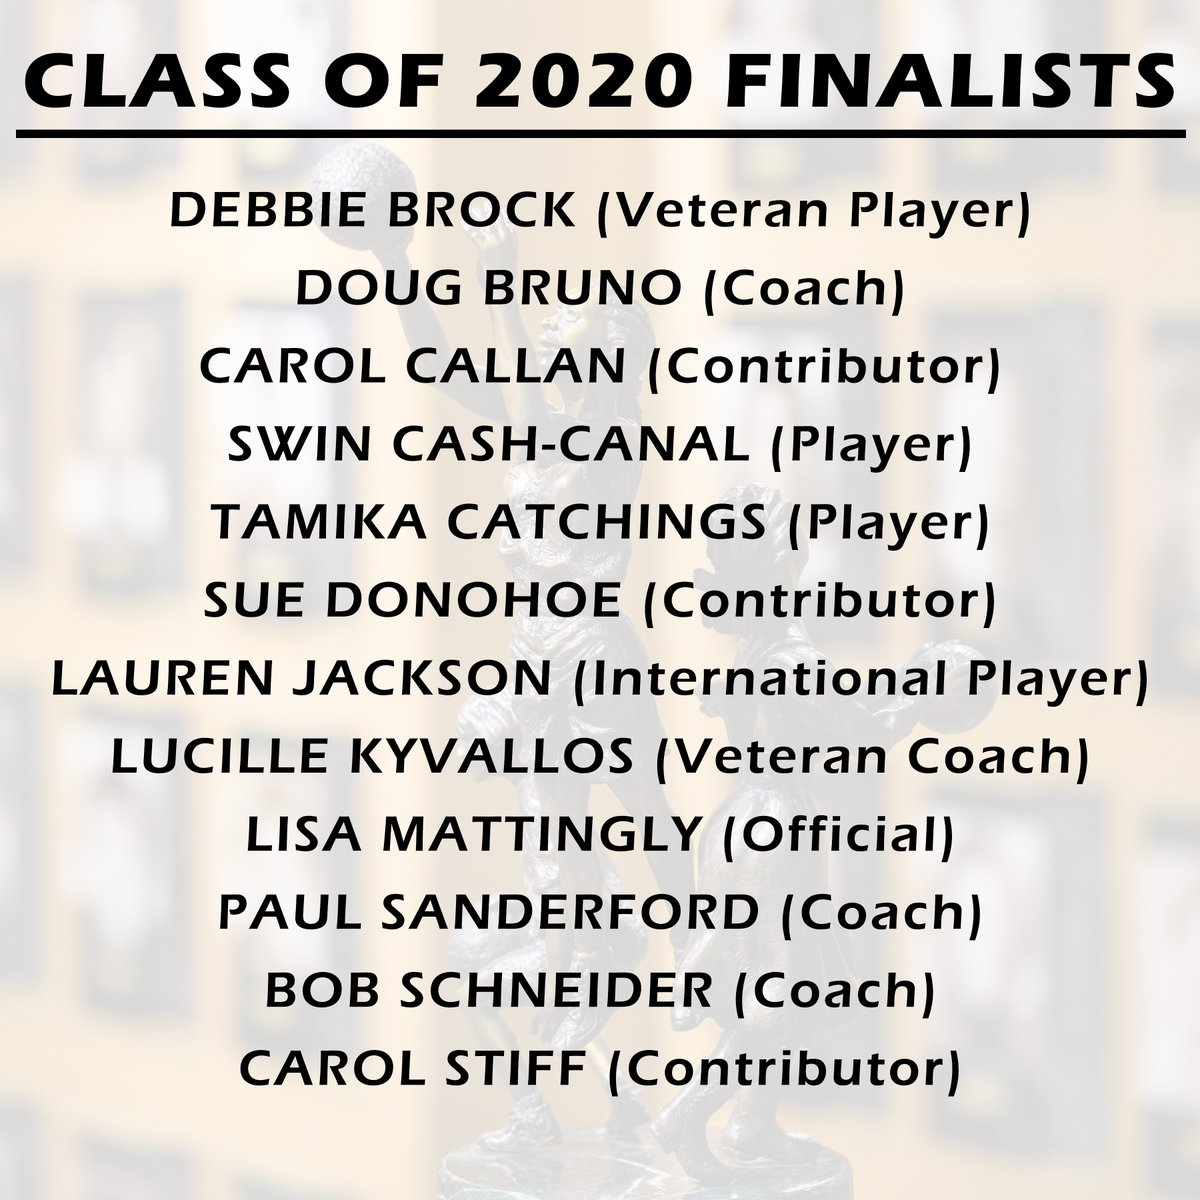 Class of 2020 Finalist announced on ESPN! Check them out conta.cc/2t4PeRx